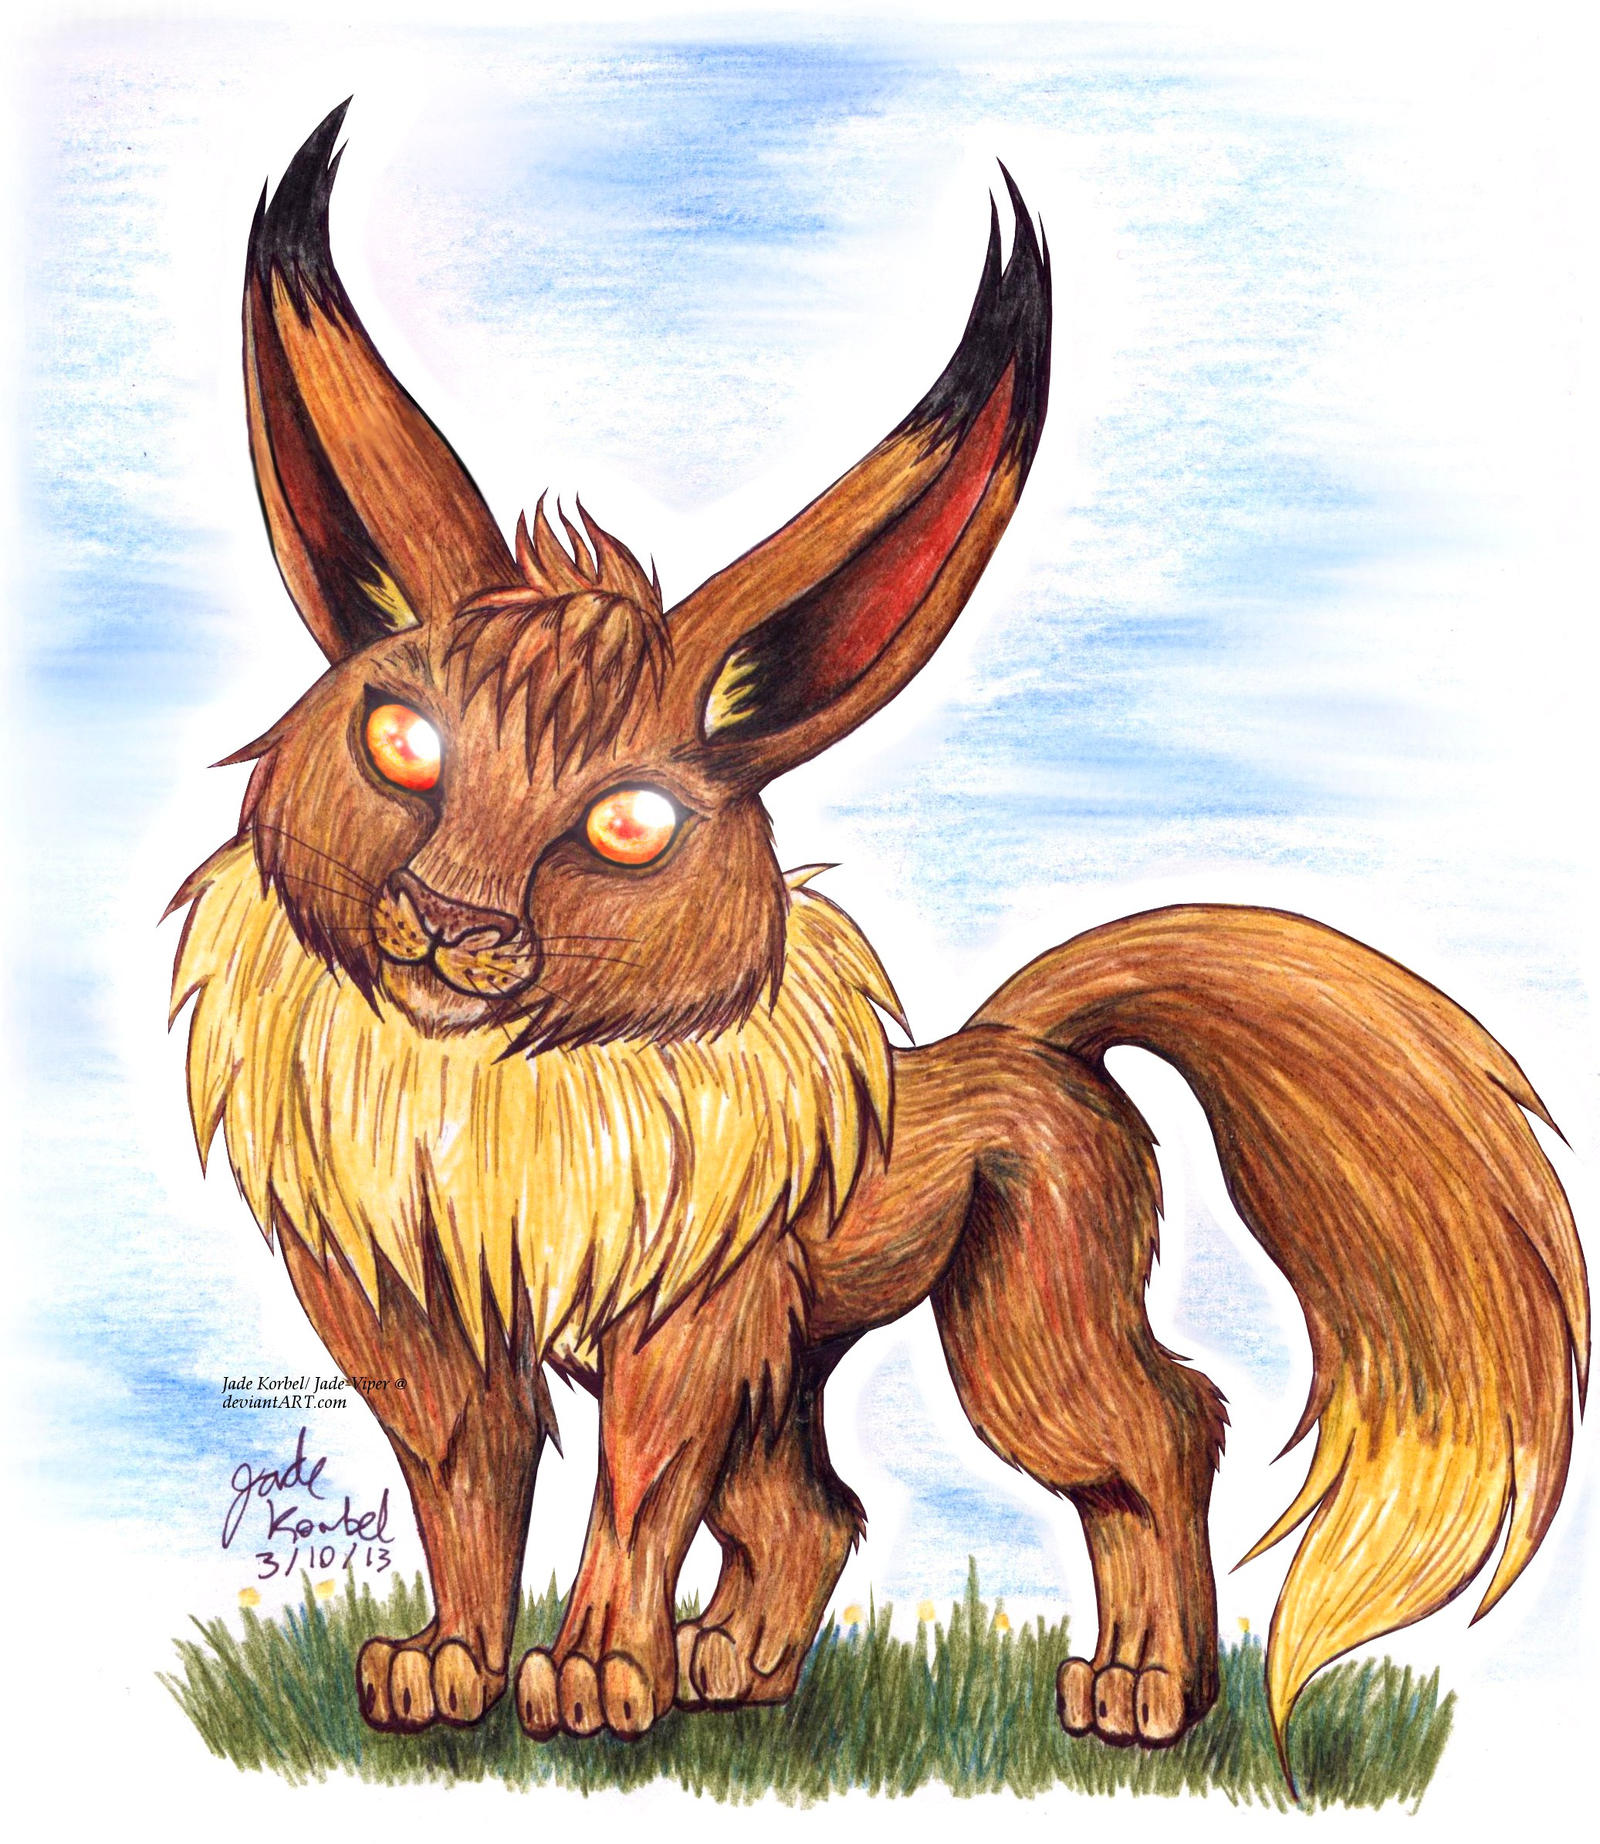 eevee colored pencil drawing by jade viper on deviantart